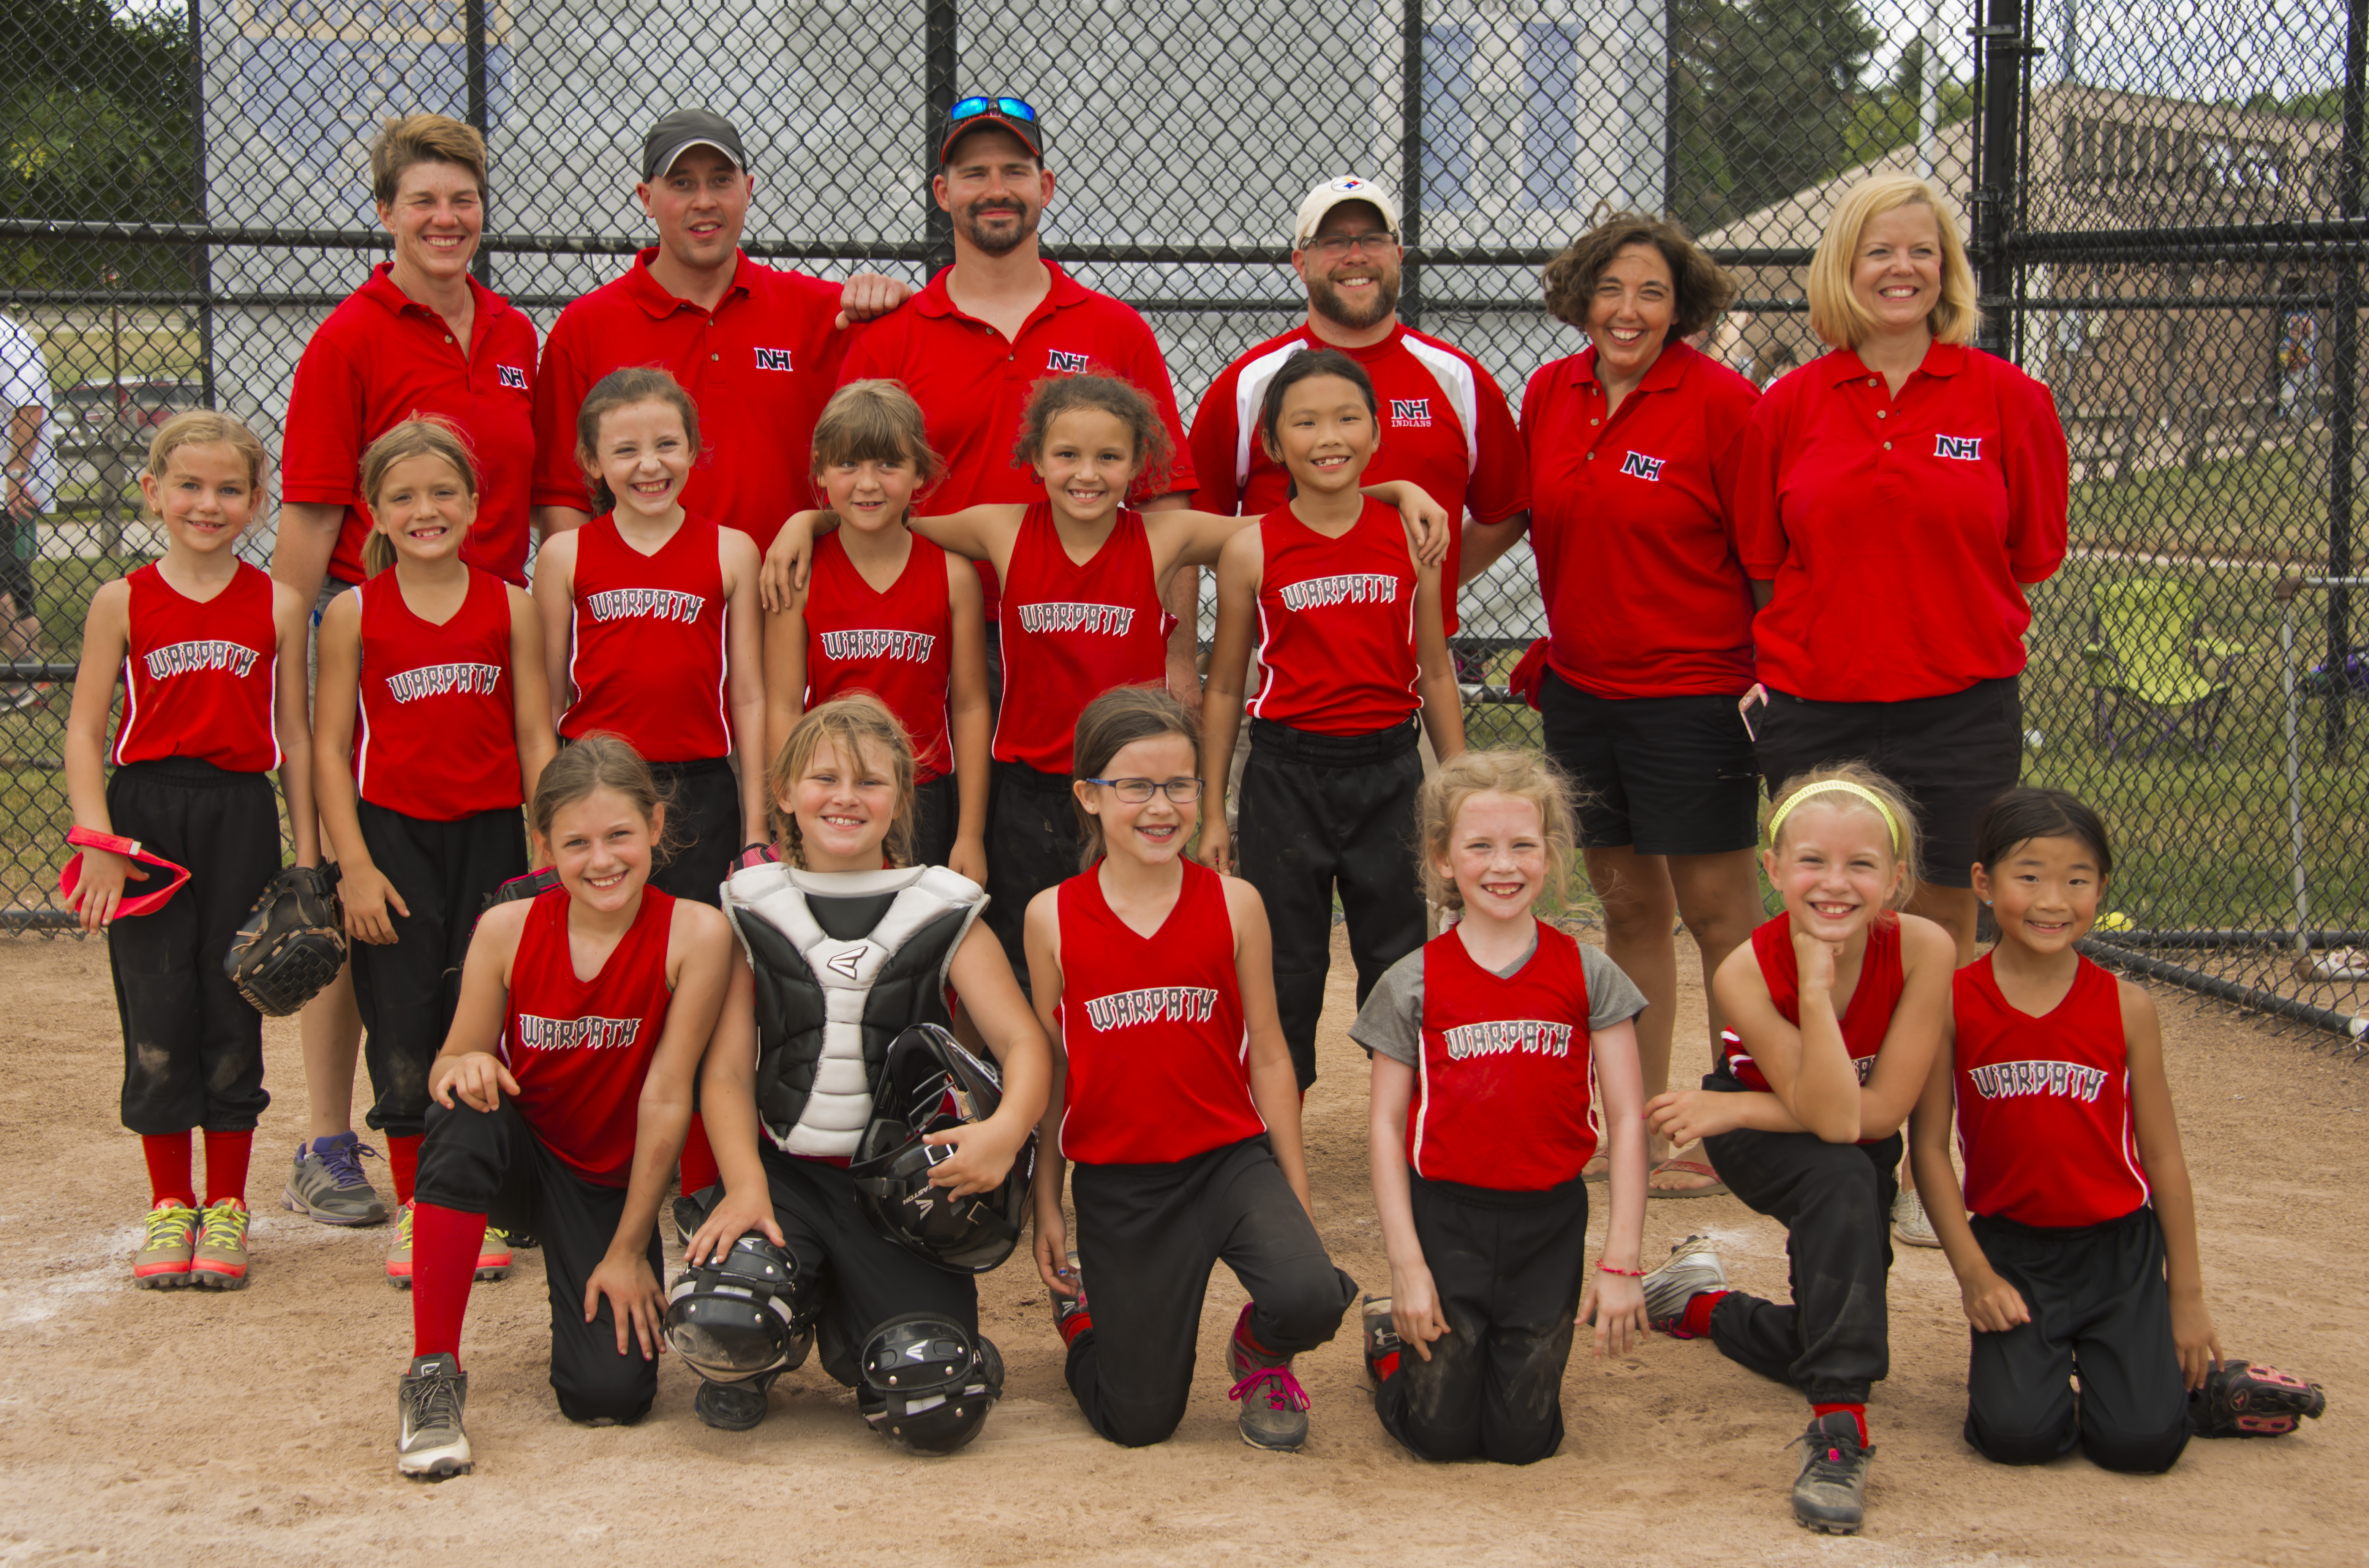 WARPATH 8U Tournament team